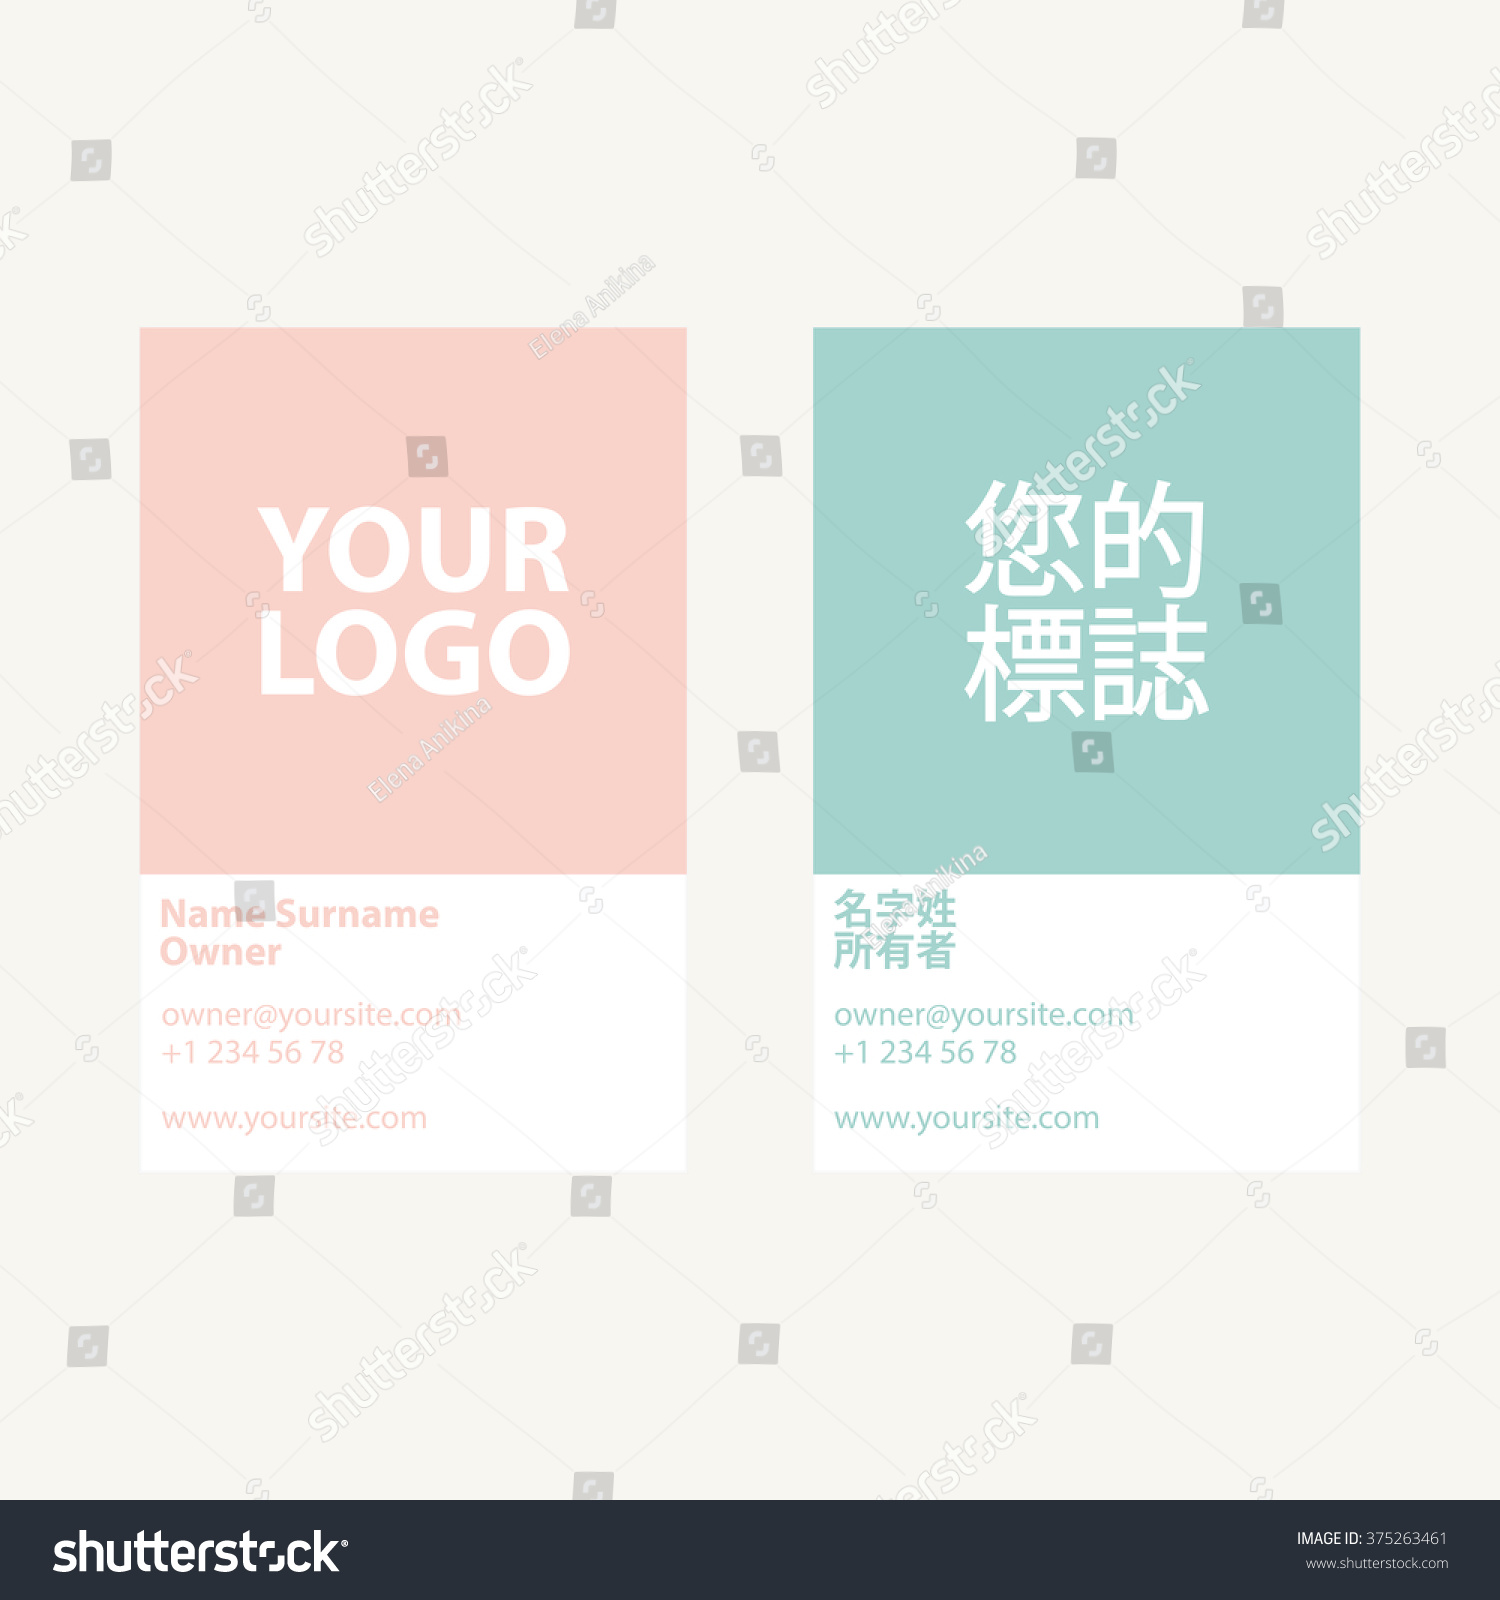 Twosided Vector Corporate Business Card Template Stock Vector